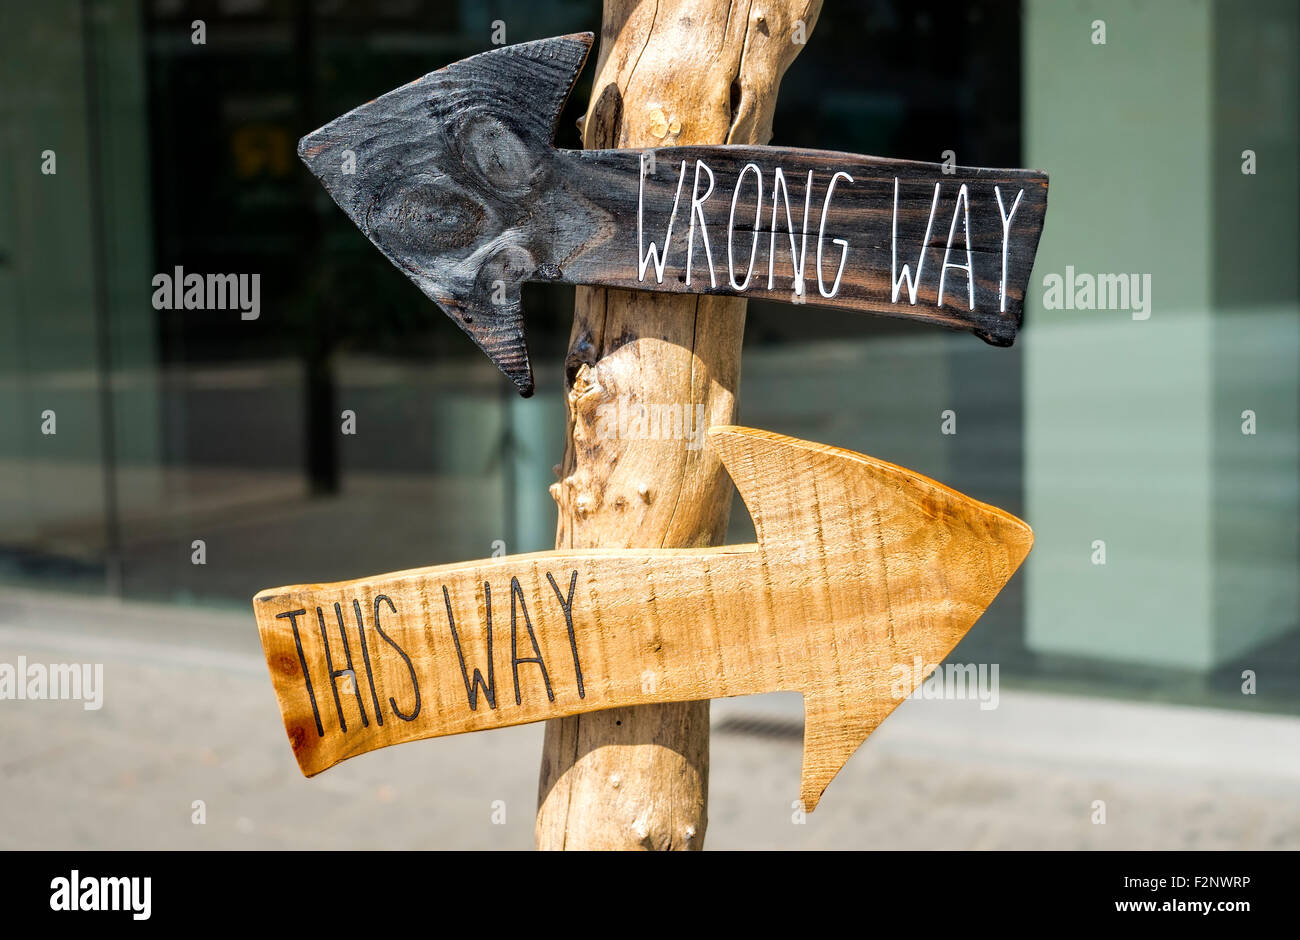 Two arrows for the right direction - Stock Image